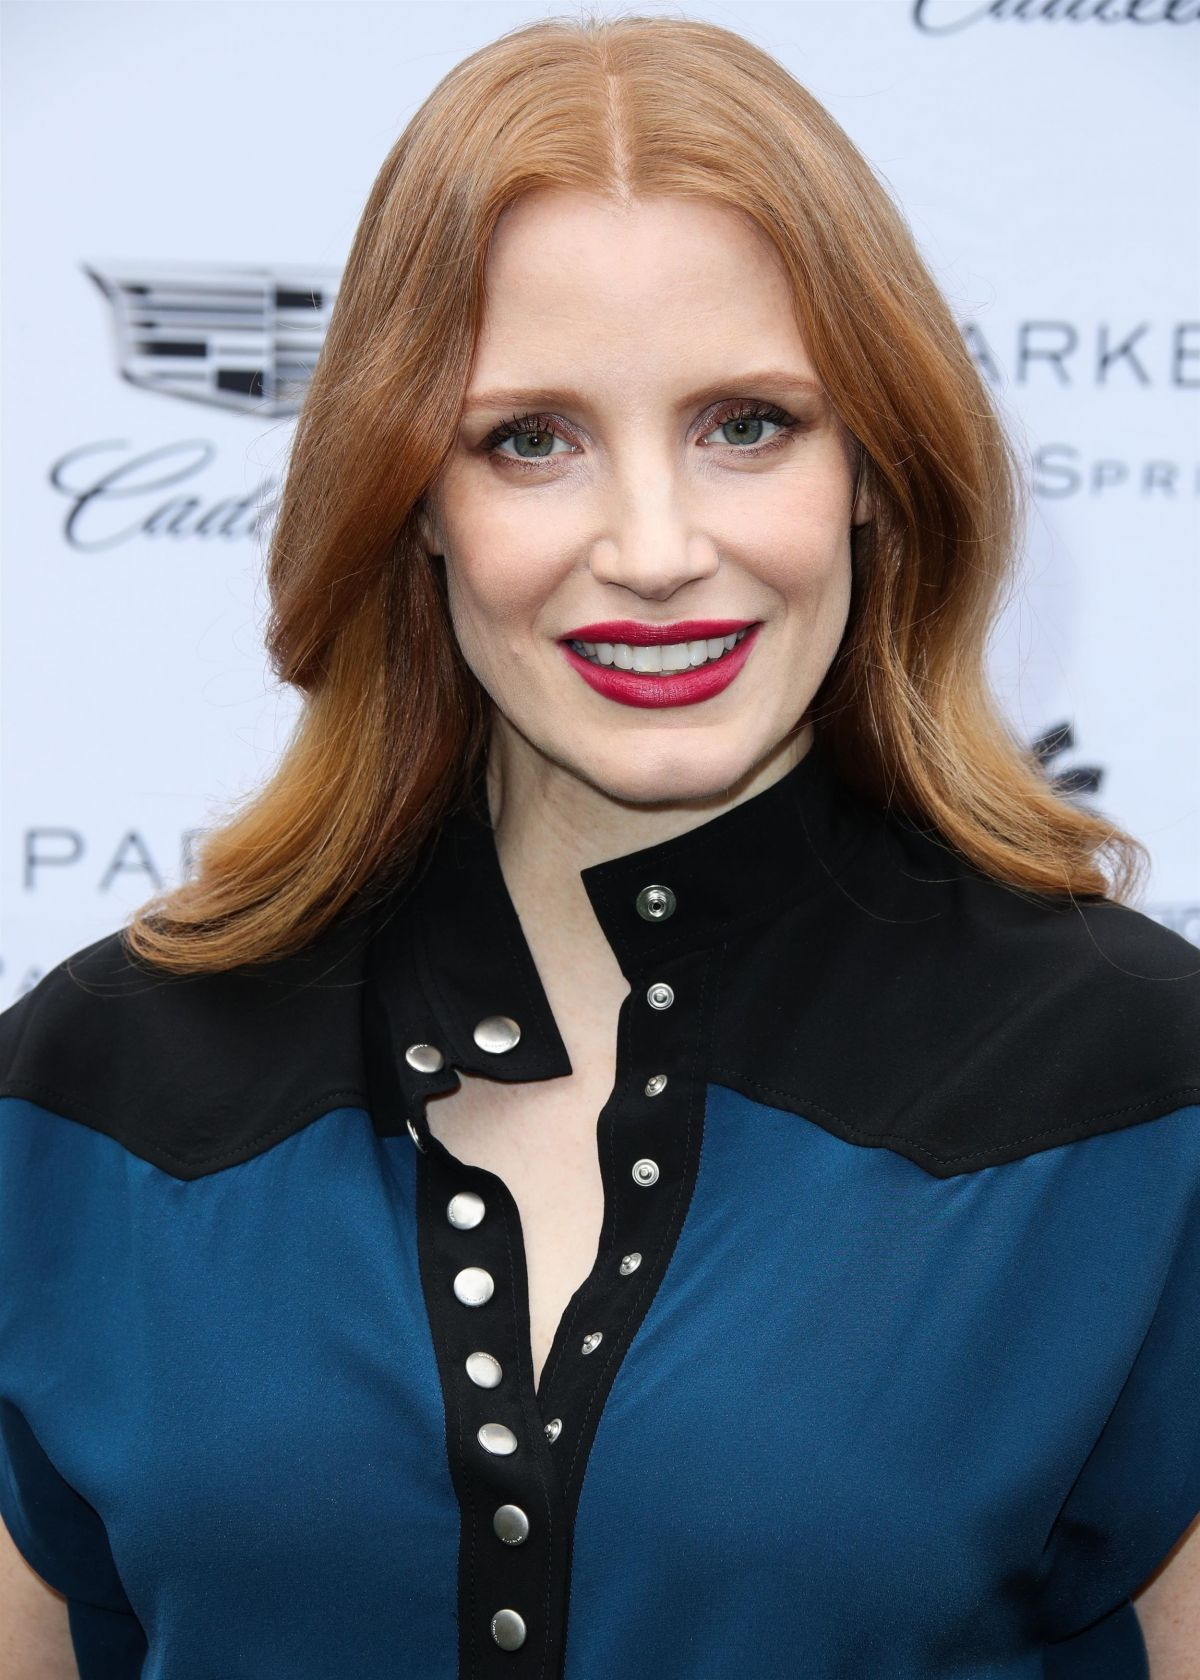 Jessica Chastain Archives - HawtCelebs - HawtCelebs Jessica Chastain